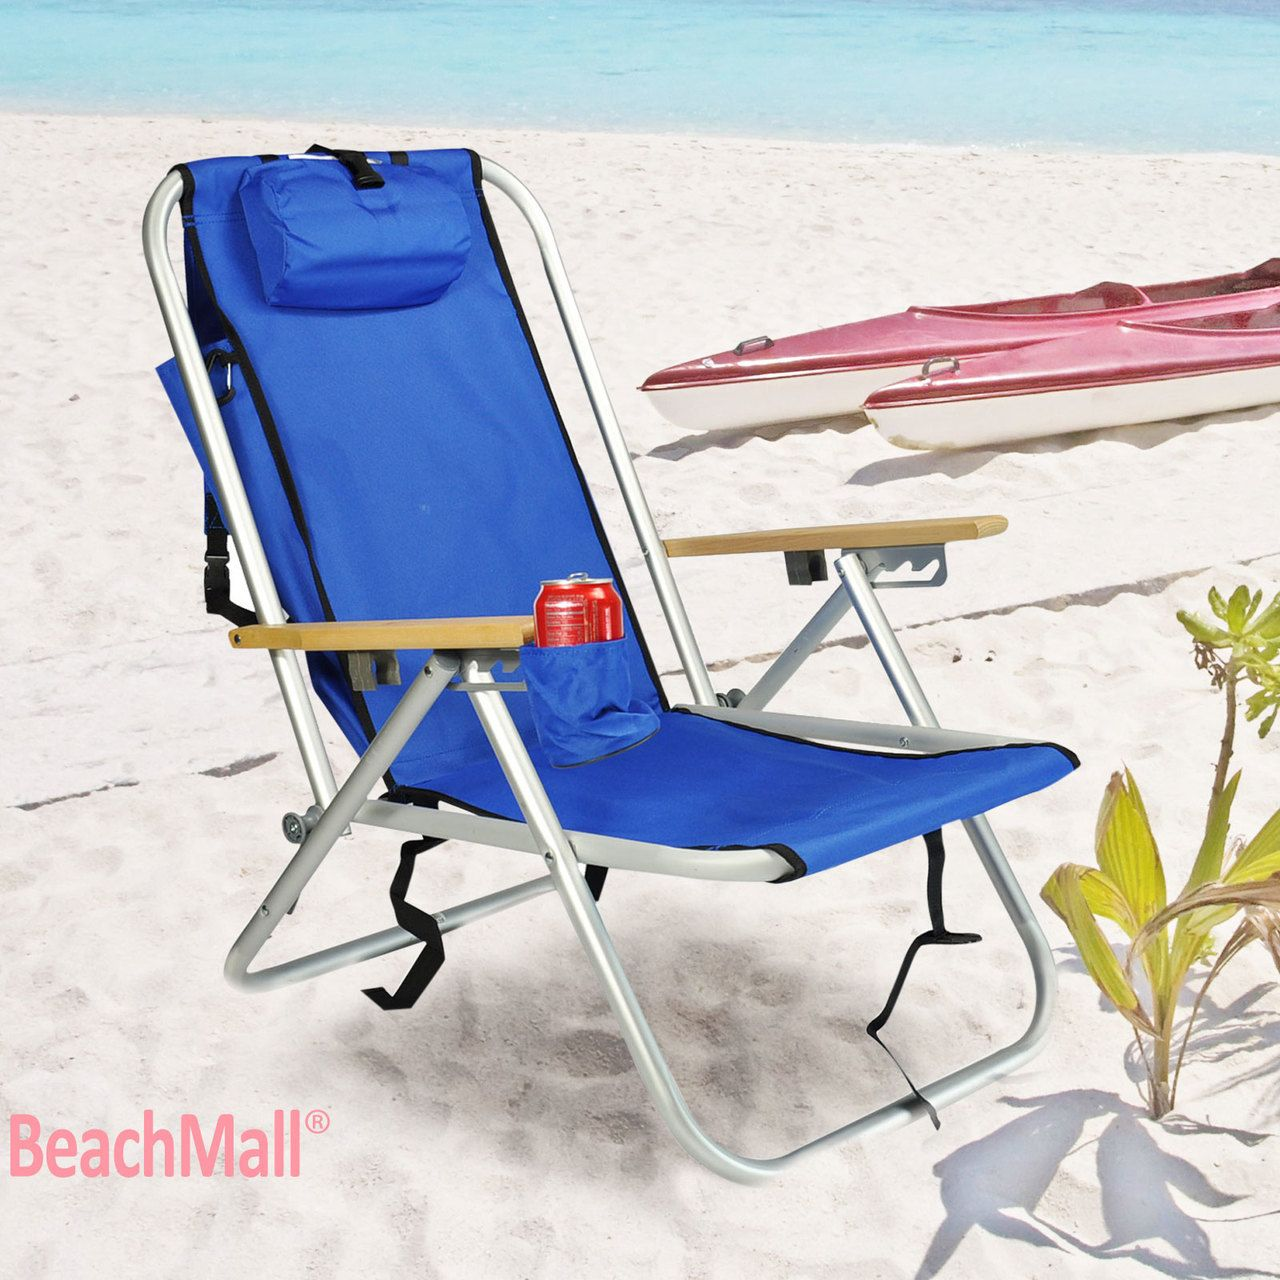 Beachmall deluxe wearever rio aluminum backpack chair